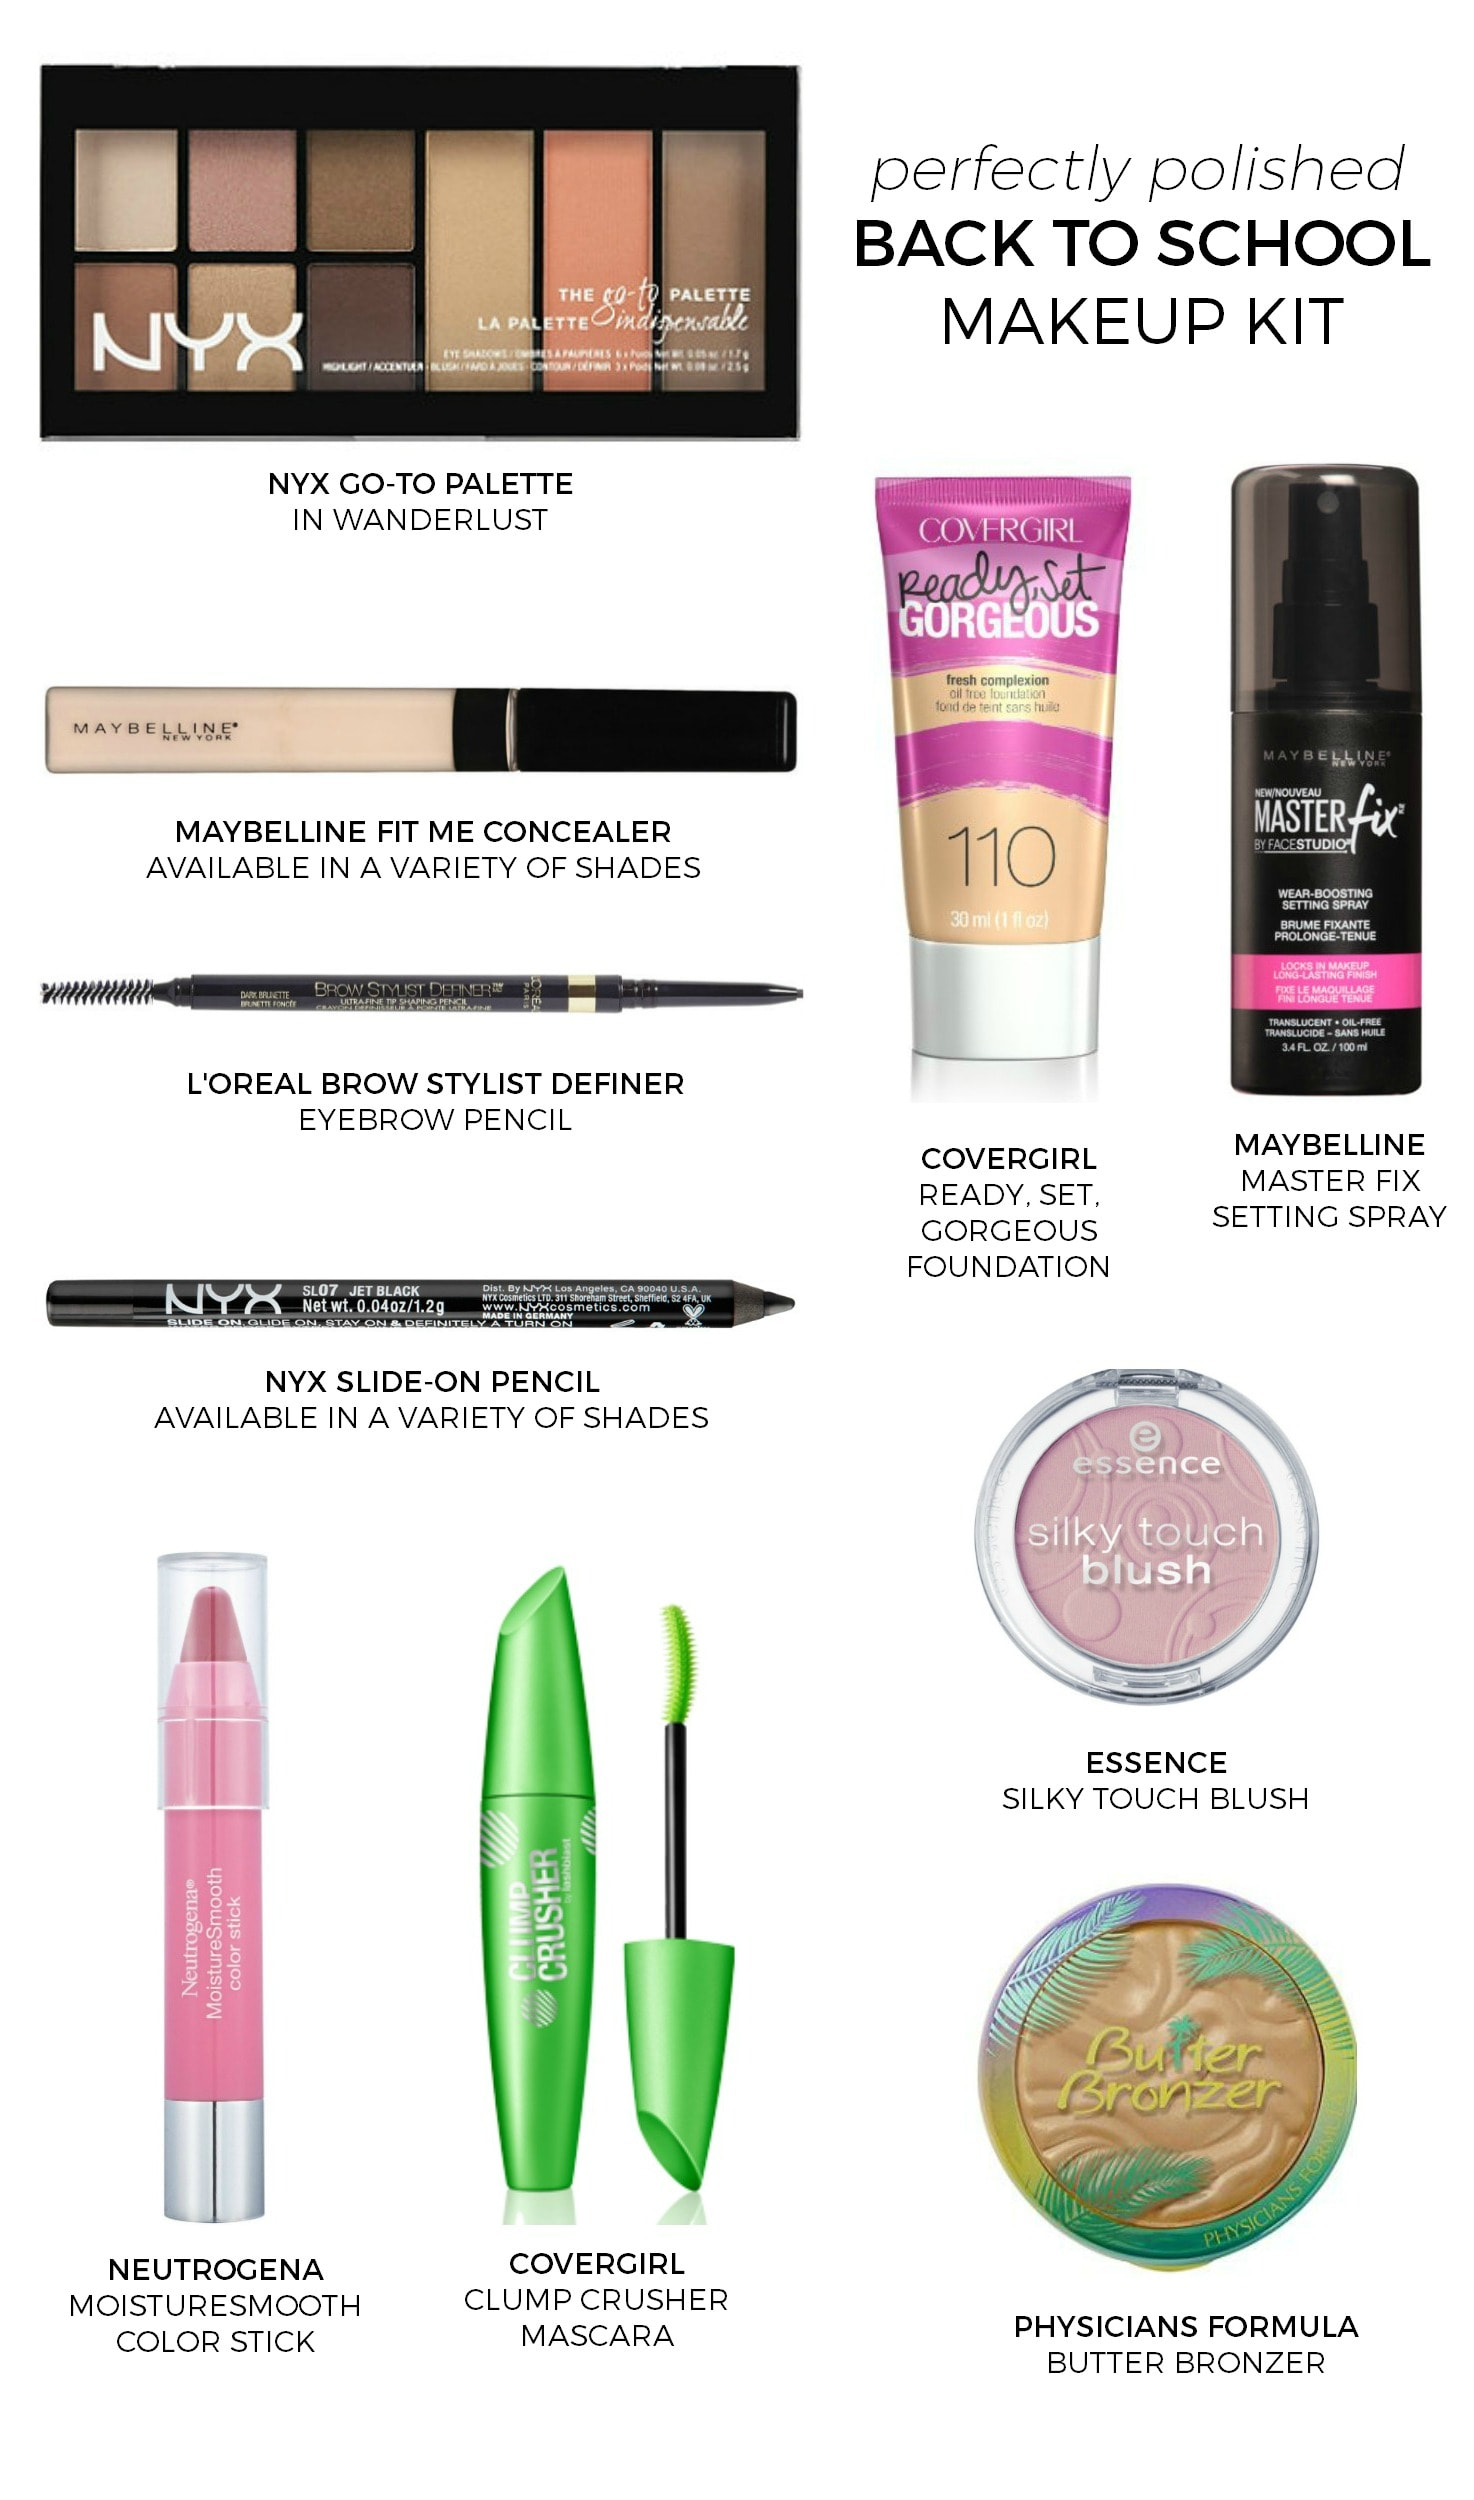 ... perfectly-polished-back-to-school-makeup-kit-drugstore-